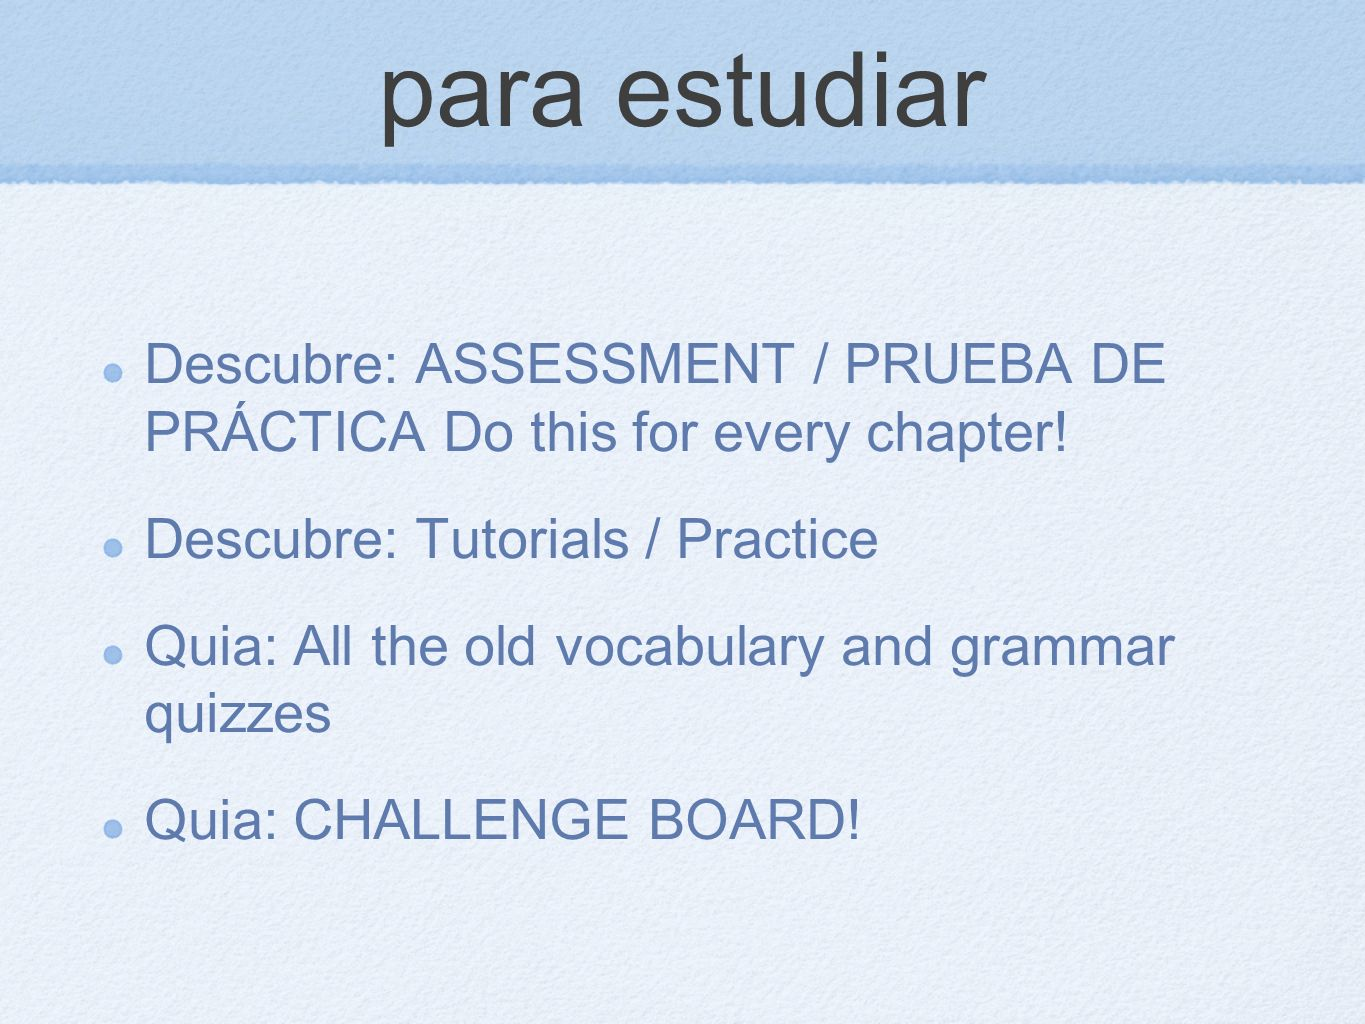 para estudiar Descubre: ASSESSMENT / PRUEBA DE PRÁCTICA Do this for every chapter! Descubre: Tutorials / Practice.